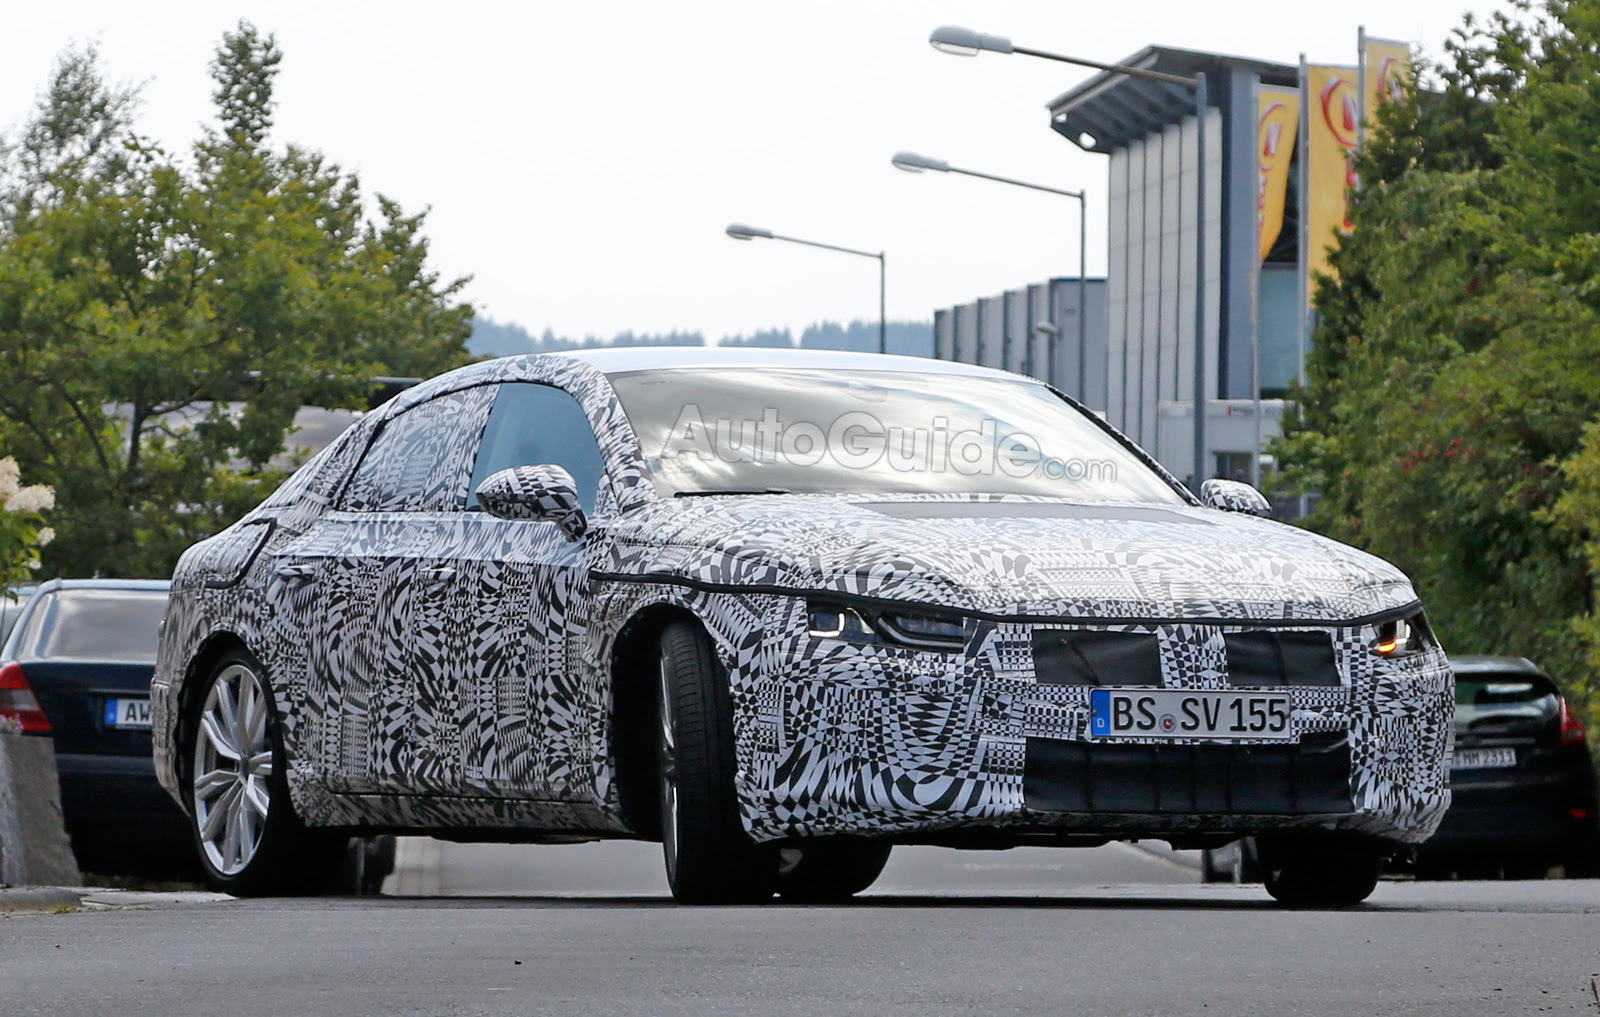 2018 volkswagen cc spied testing with aggressive styling